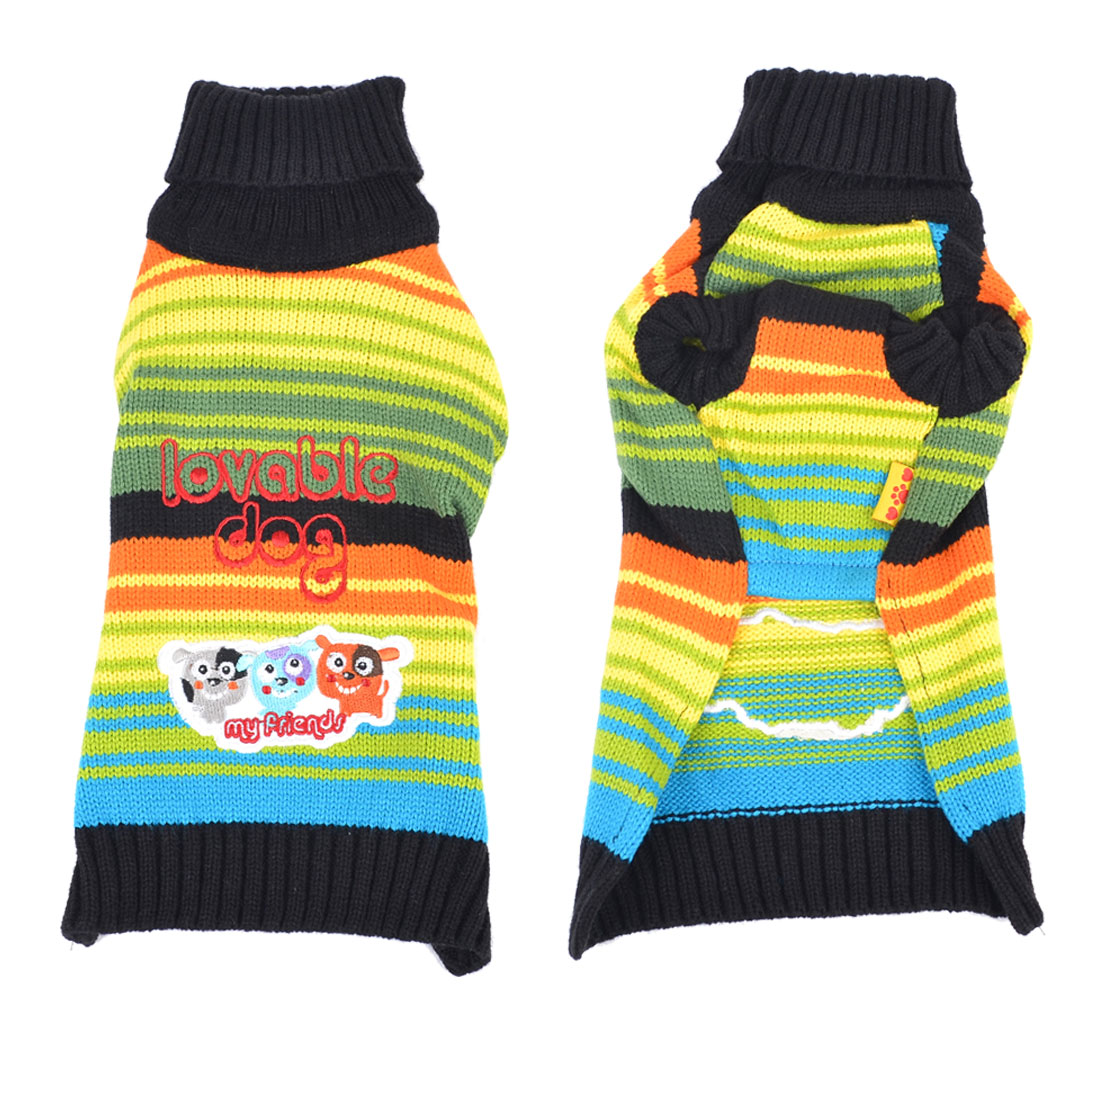 Multicolor Warm Turtleneck Letter Print Knitted Chihuaha Dog Sweater Clothes XL